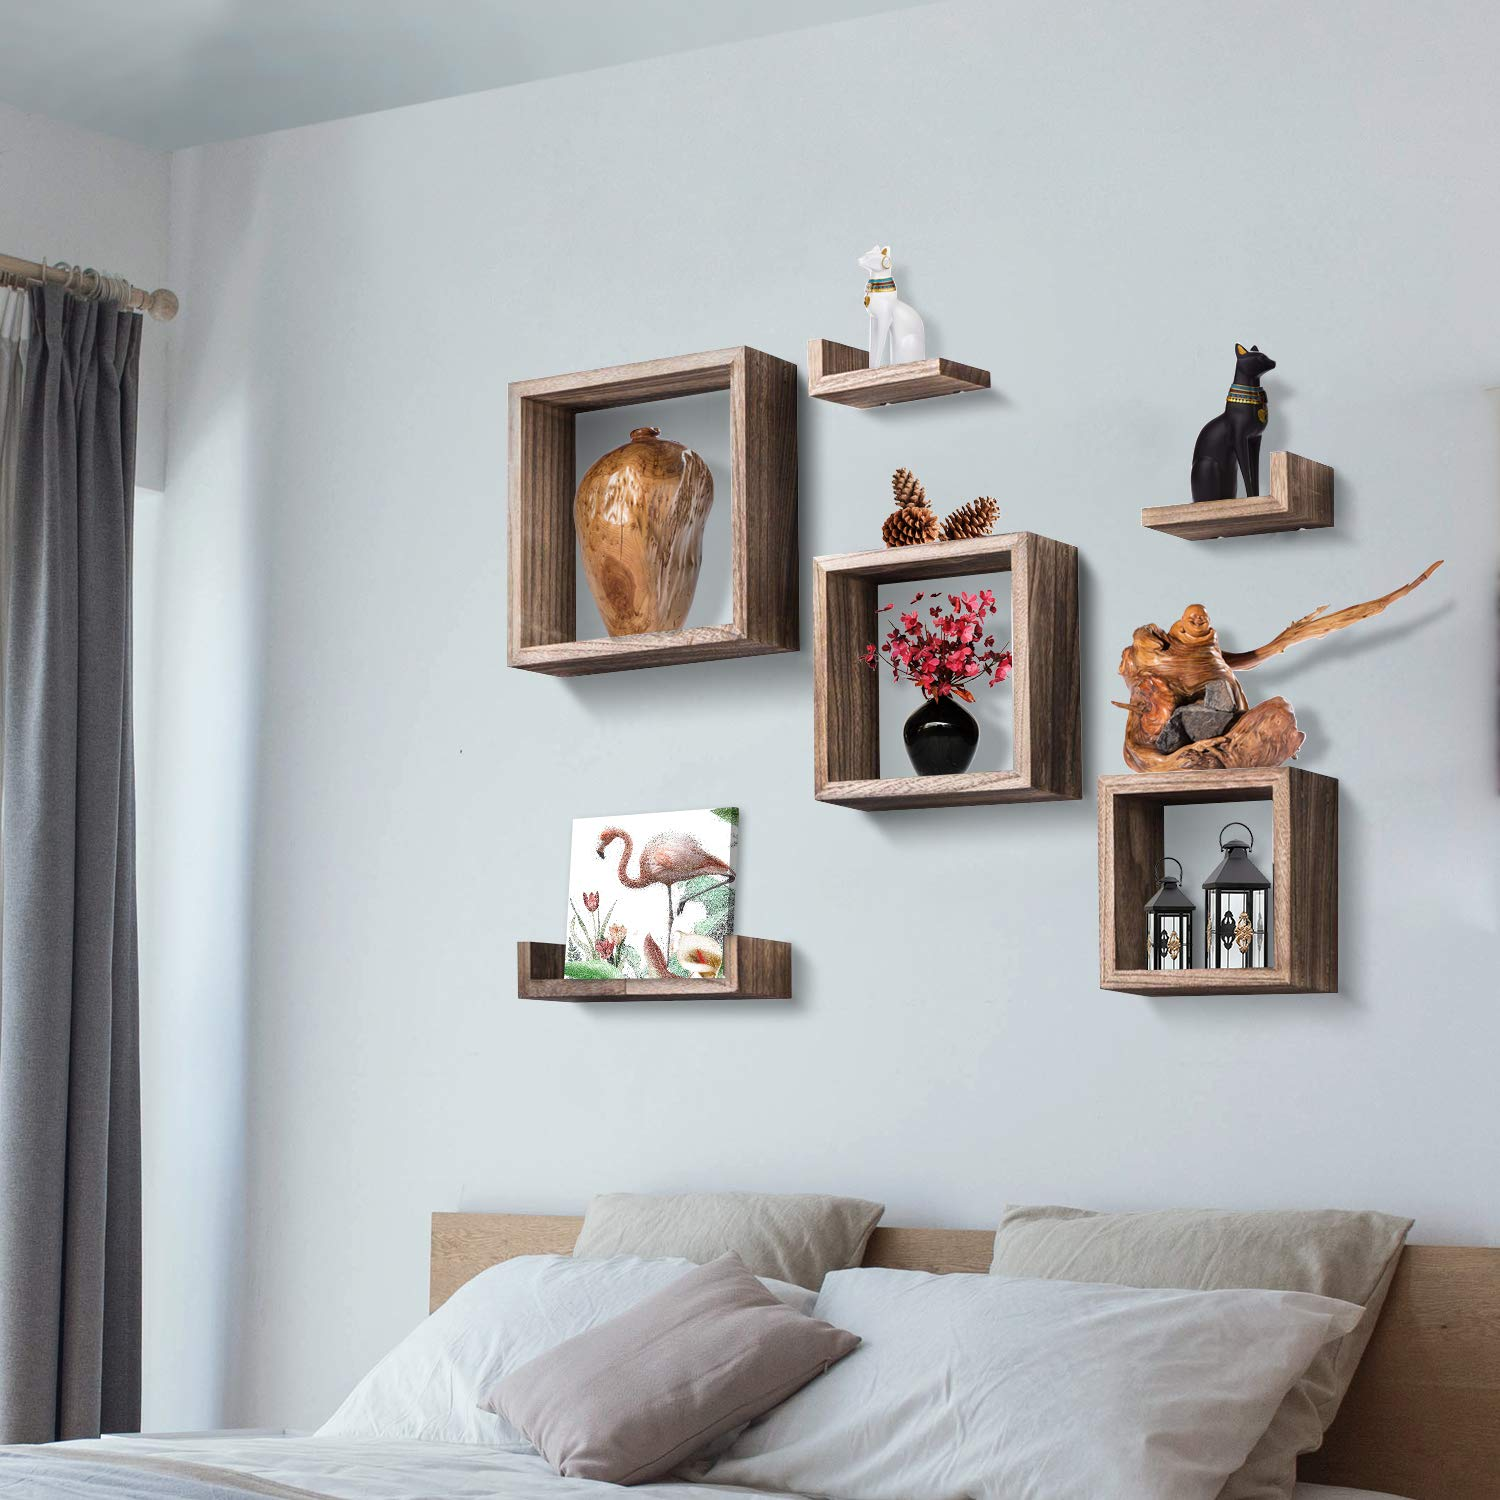 Floating Shelves Wall Mounted Shelf With 3 Square Boxes And 3 L Shelves For  Grouping Set Of 7 Rustic Wood Wall Storage Shelves For Bedroom, Living